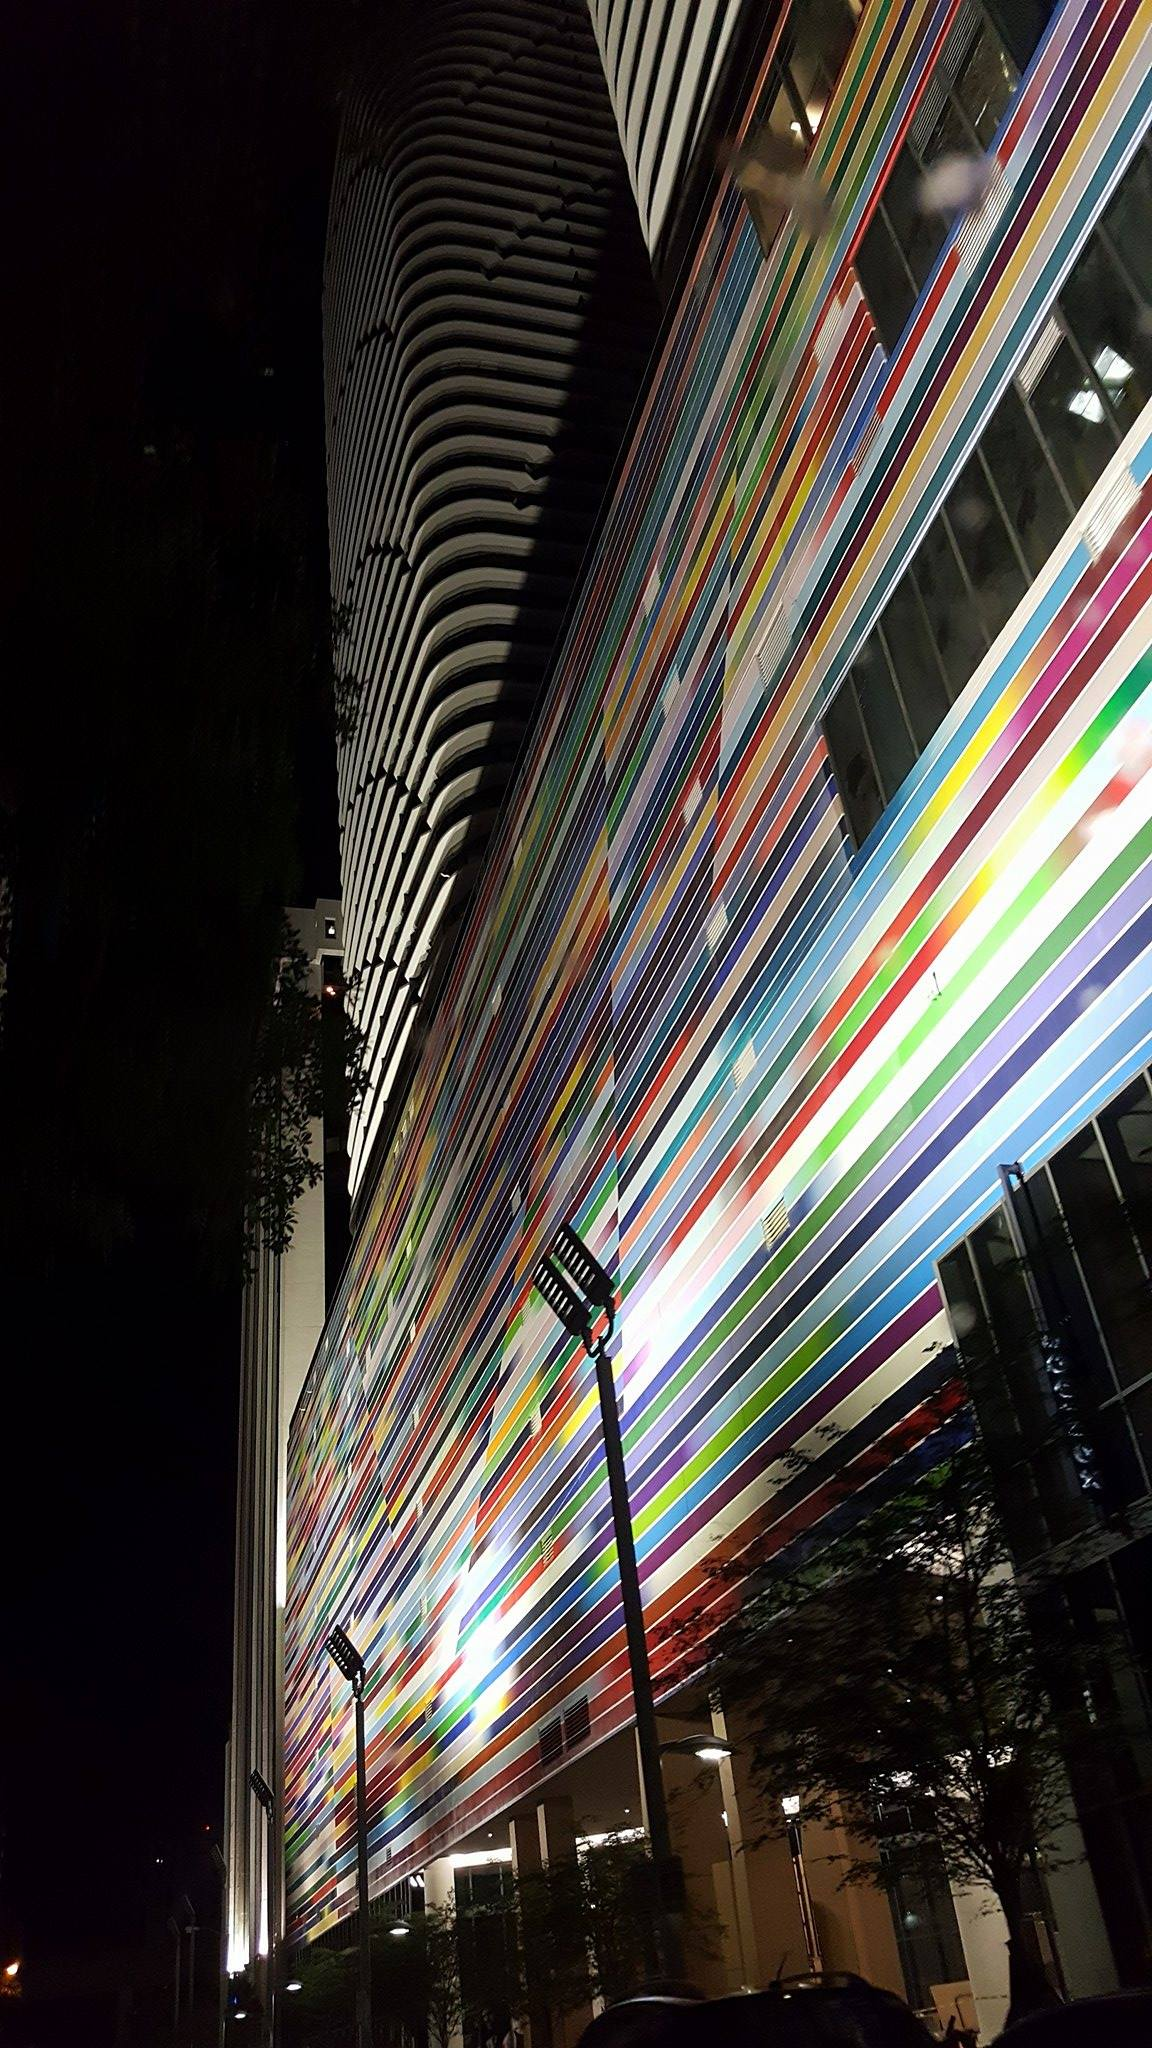 Brickell Heights Streetscape - Mural Lighting